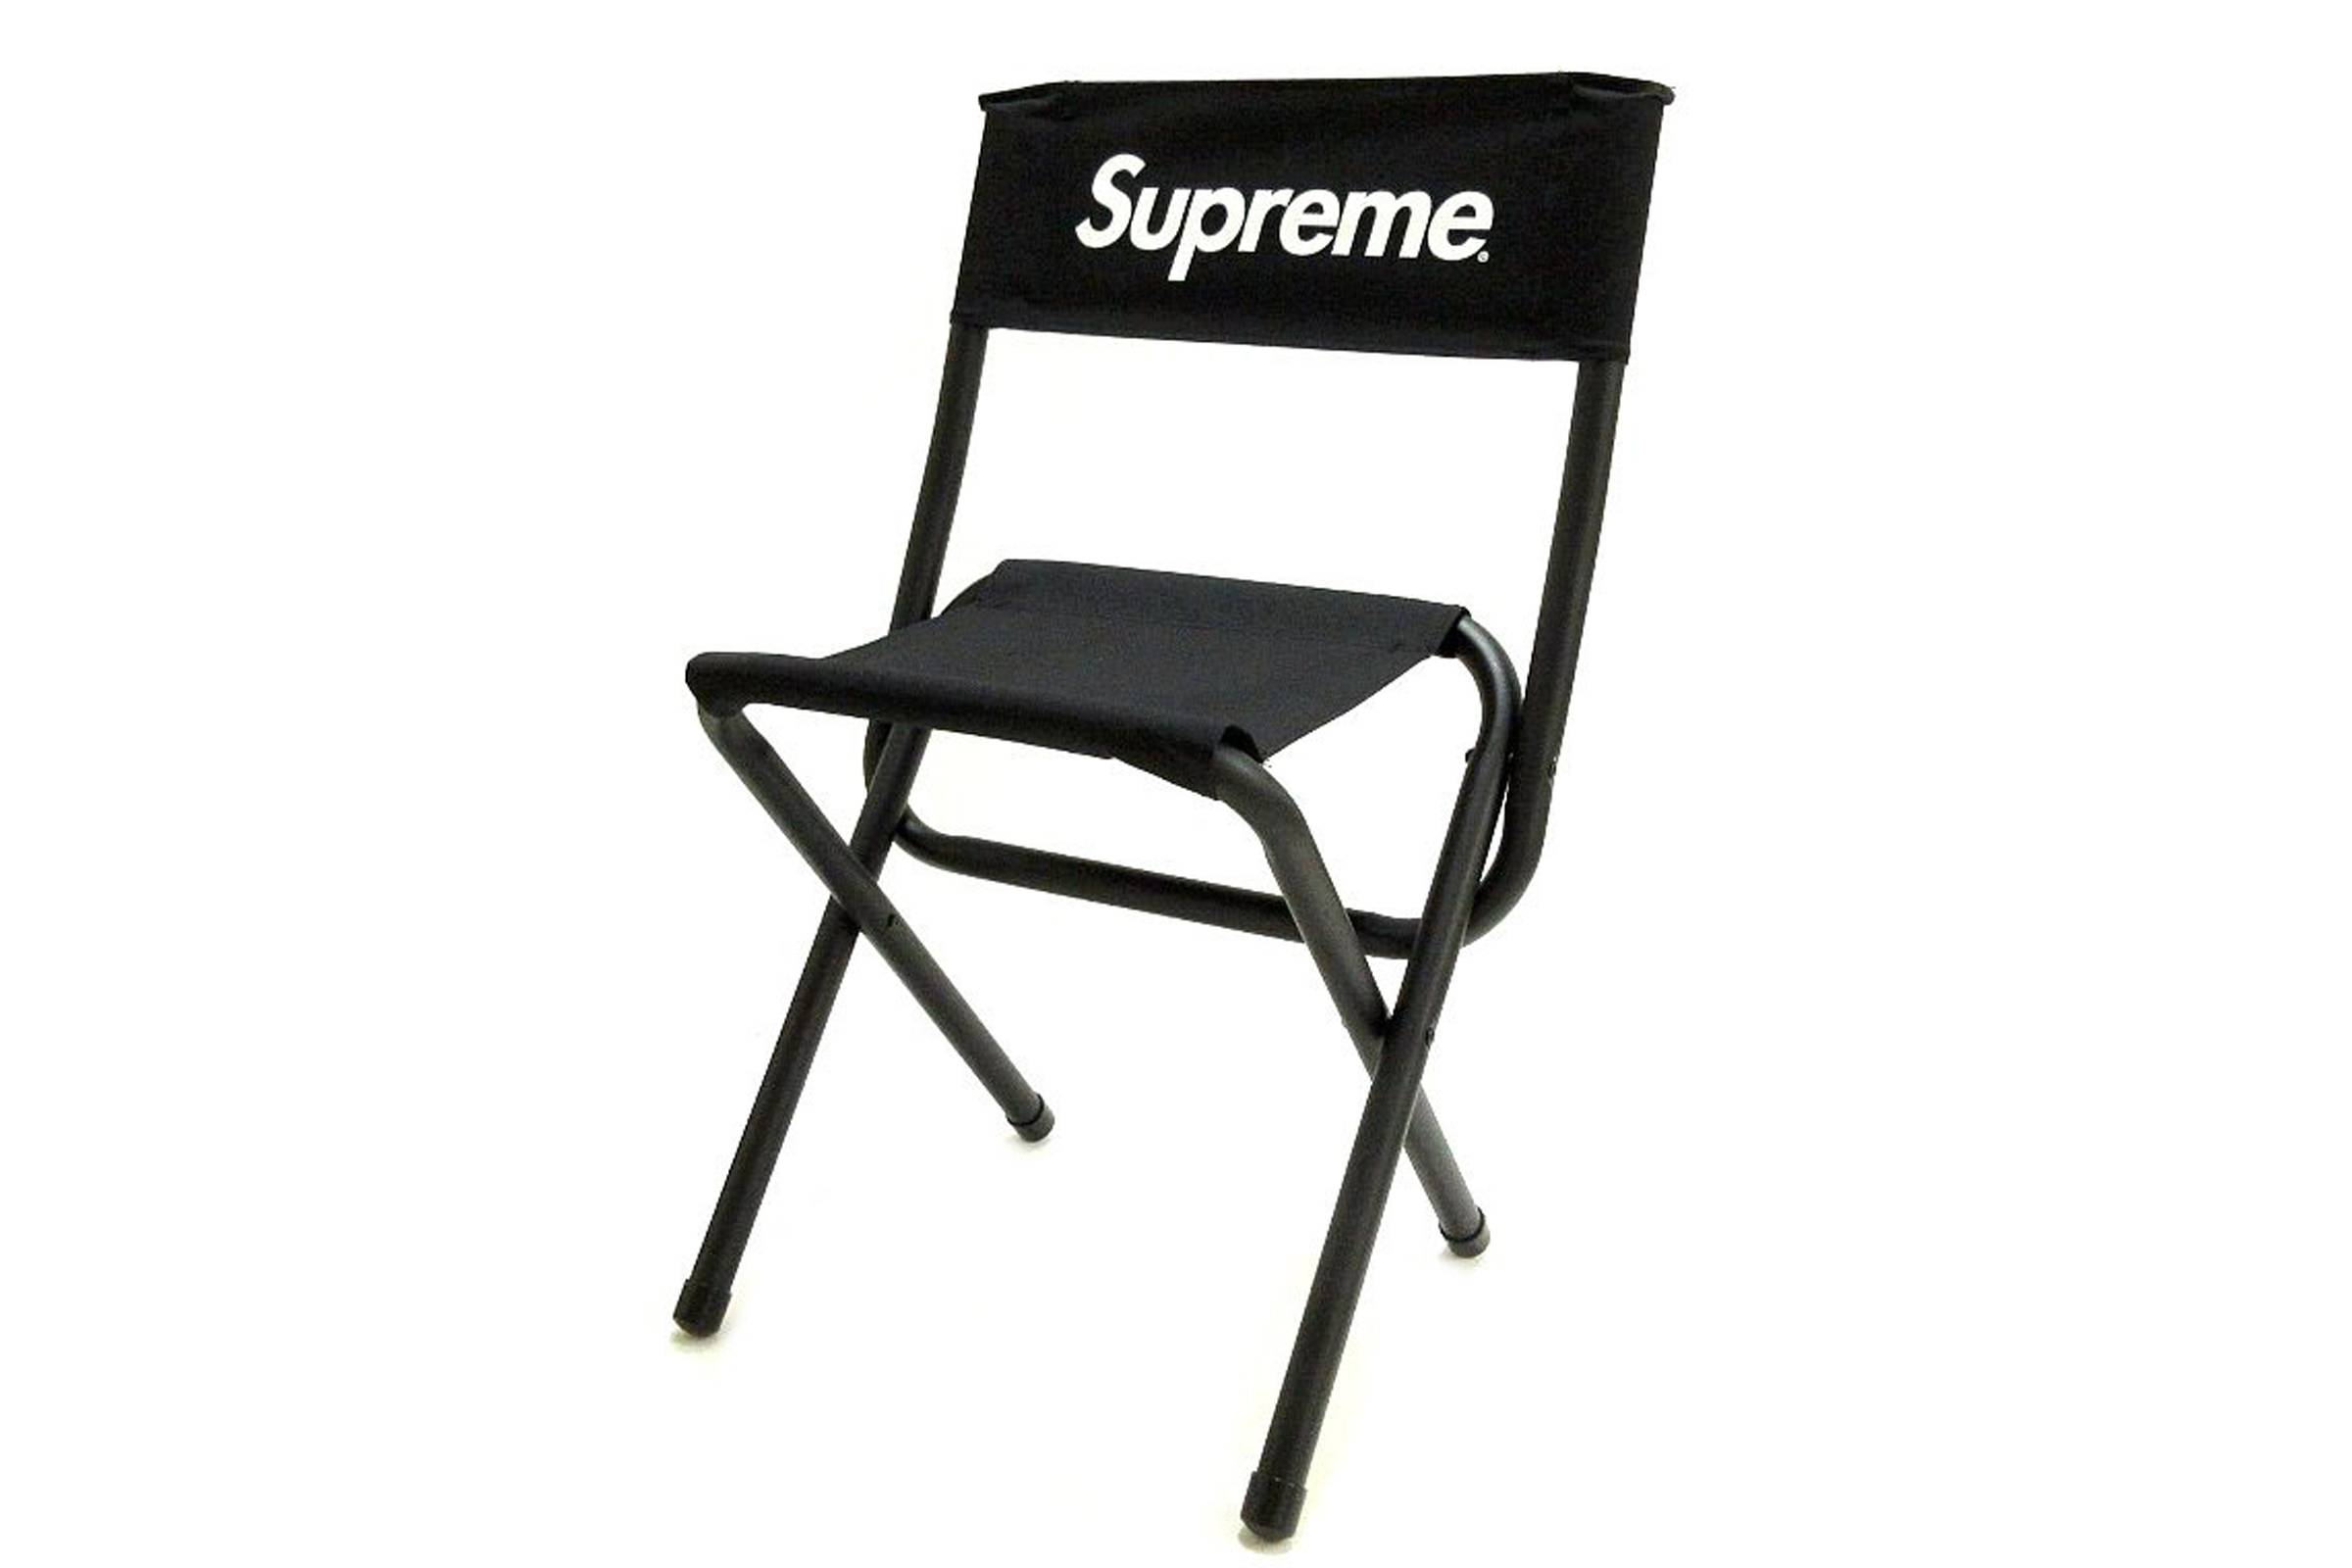 coleman max camping chair outdoor bar height swivel chairs our 50 favorite supreme accessories